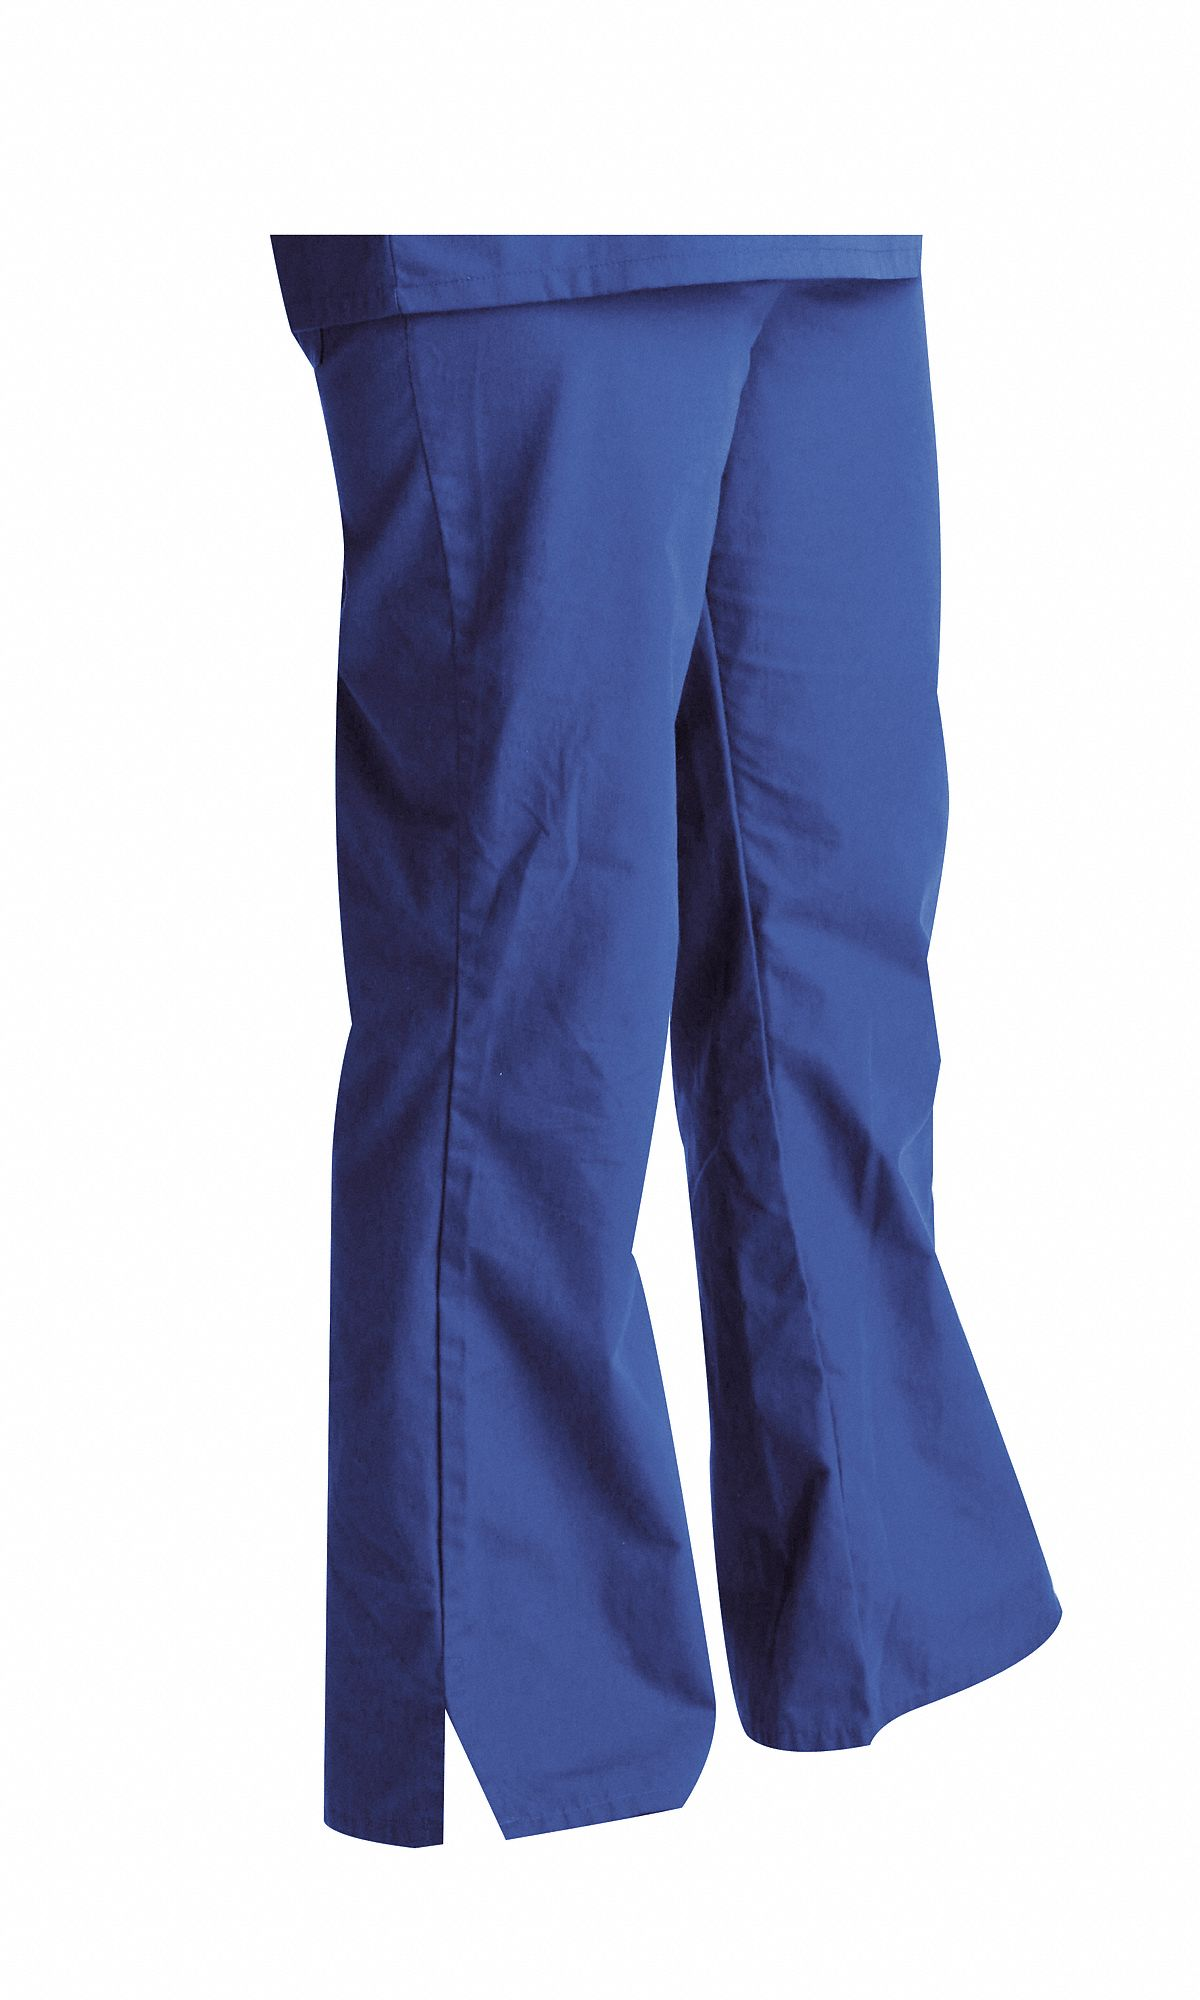 Royal Blue Scrub Pants,  XL,  Polyester/Cotton,  Fits Waist Size 35 to 38 in,  Women's